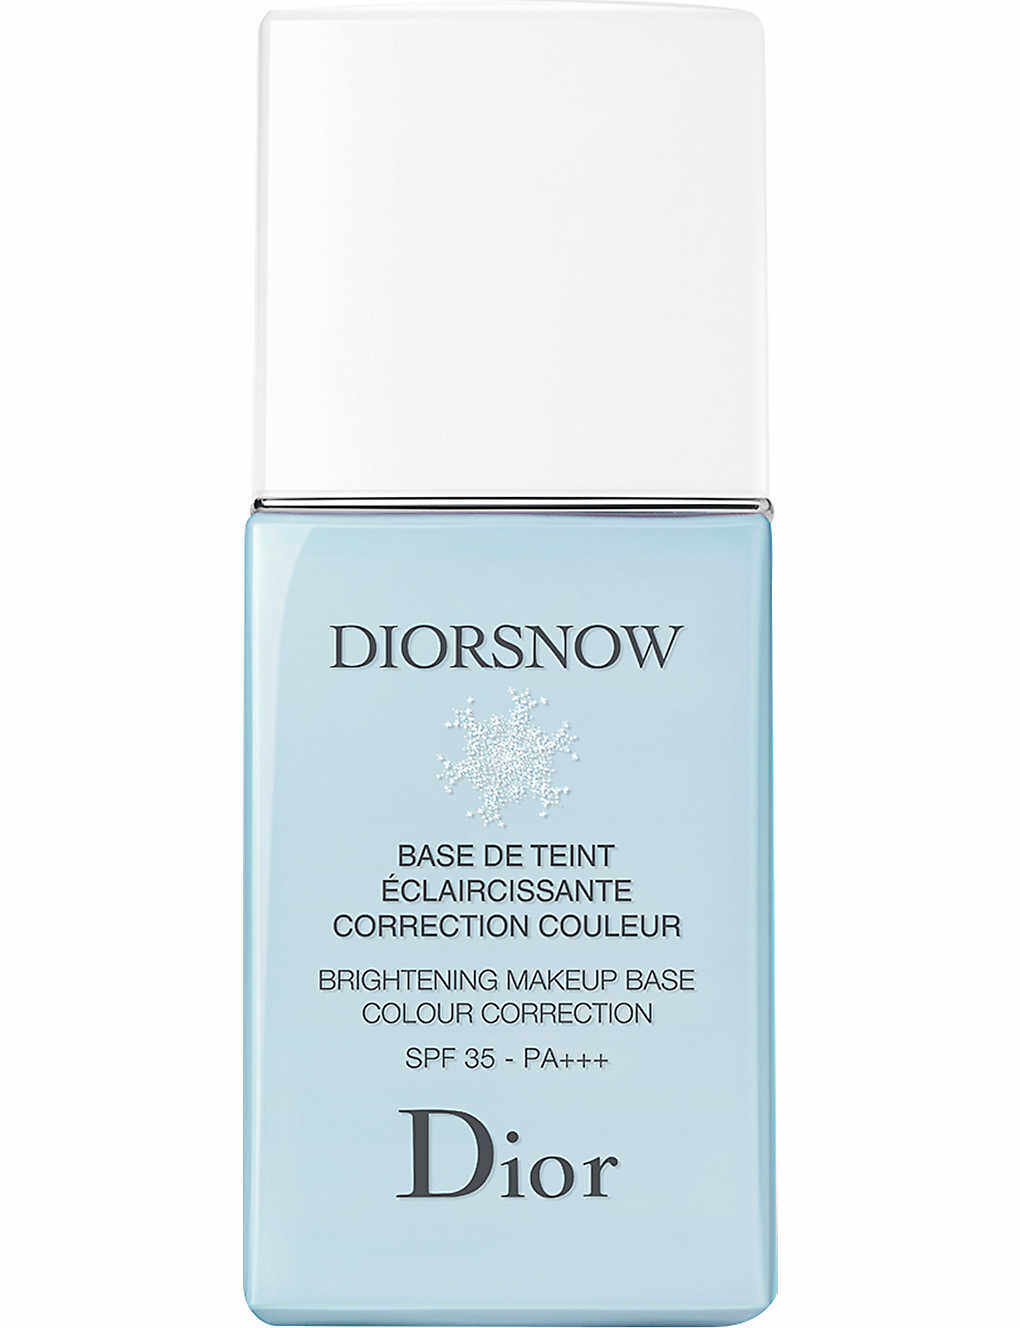 Dior Diorsnow Brightening Make-Up Base Colour Correction $350